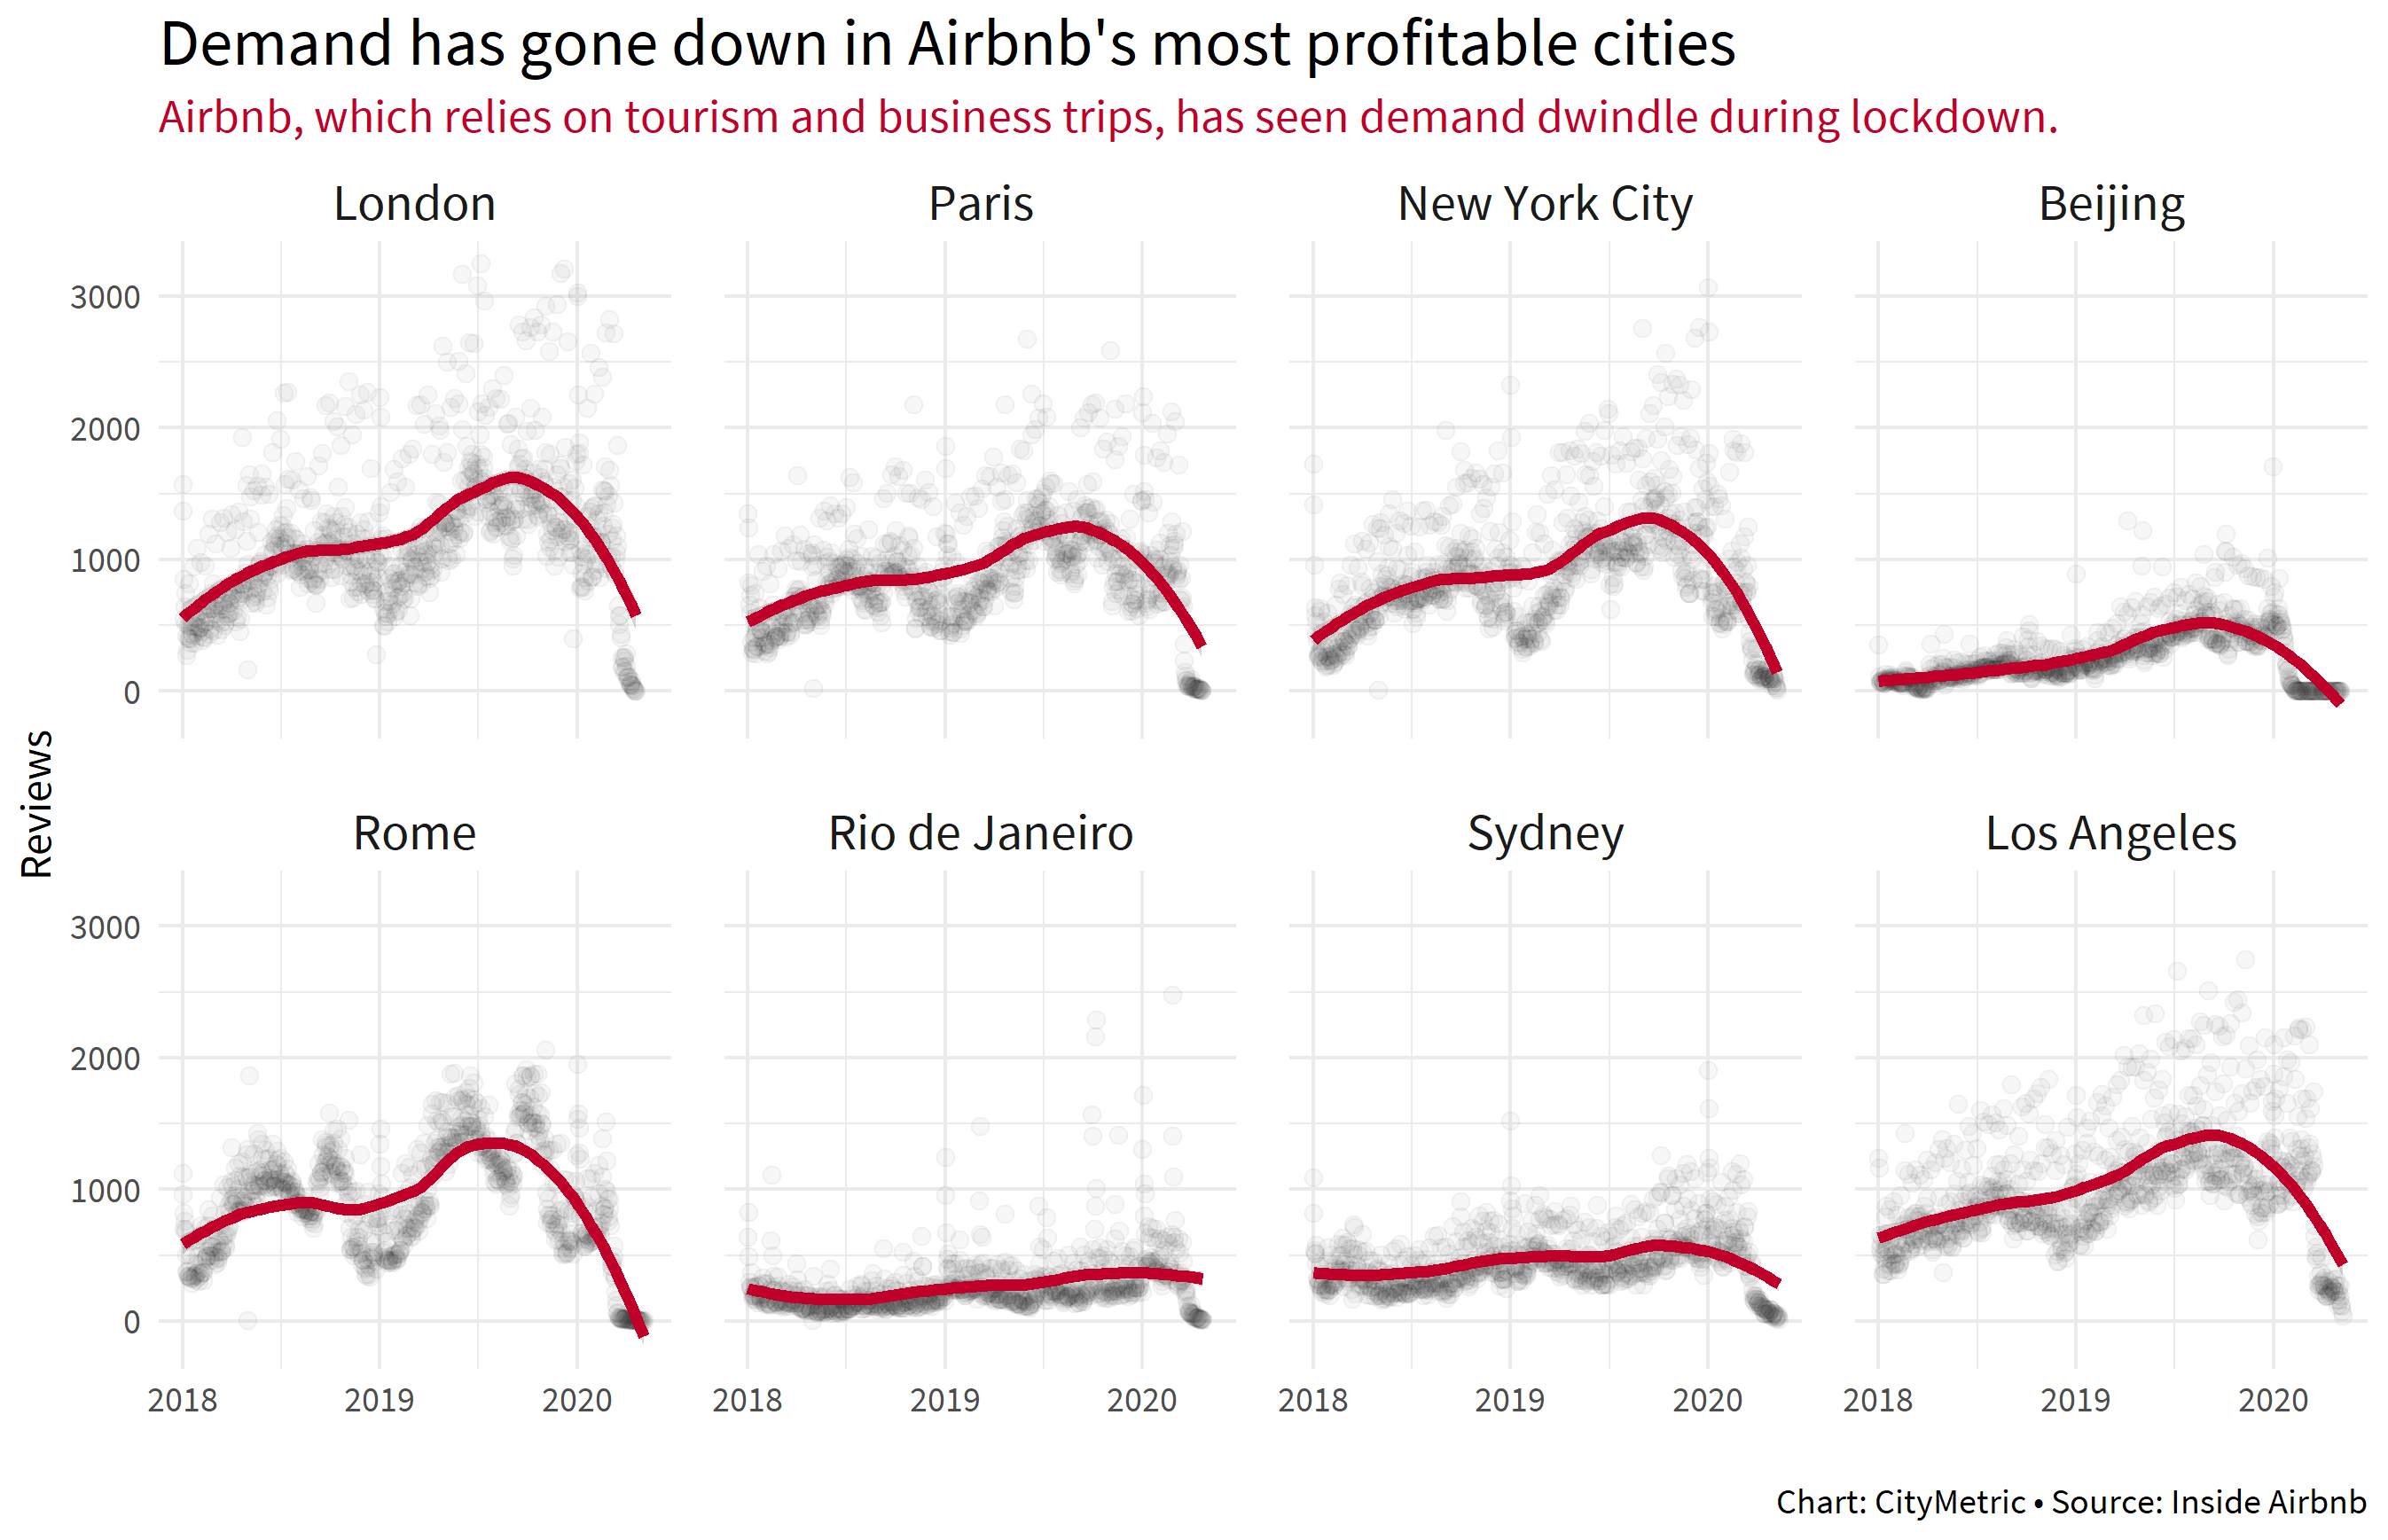 Demand has gone down in Airbnb's most profitable cities